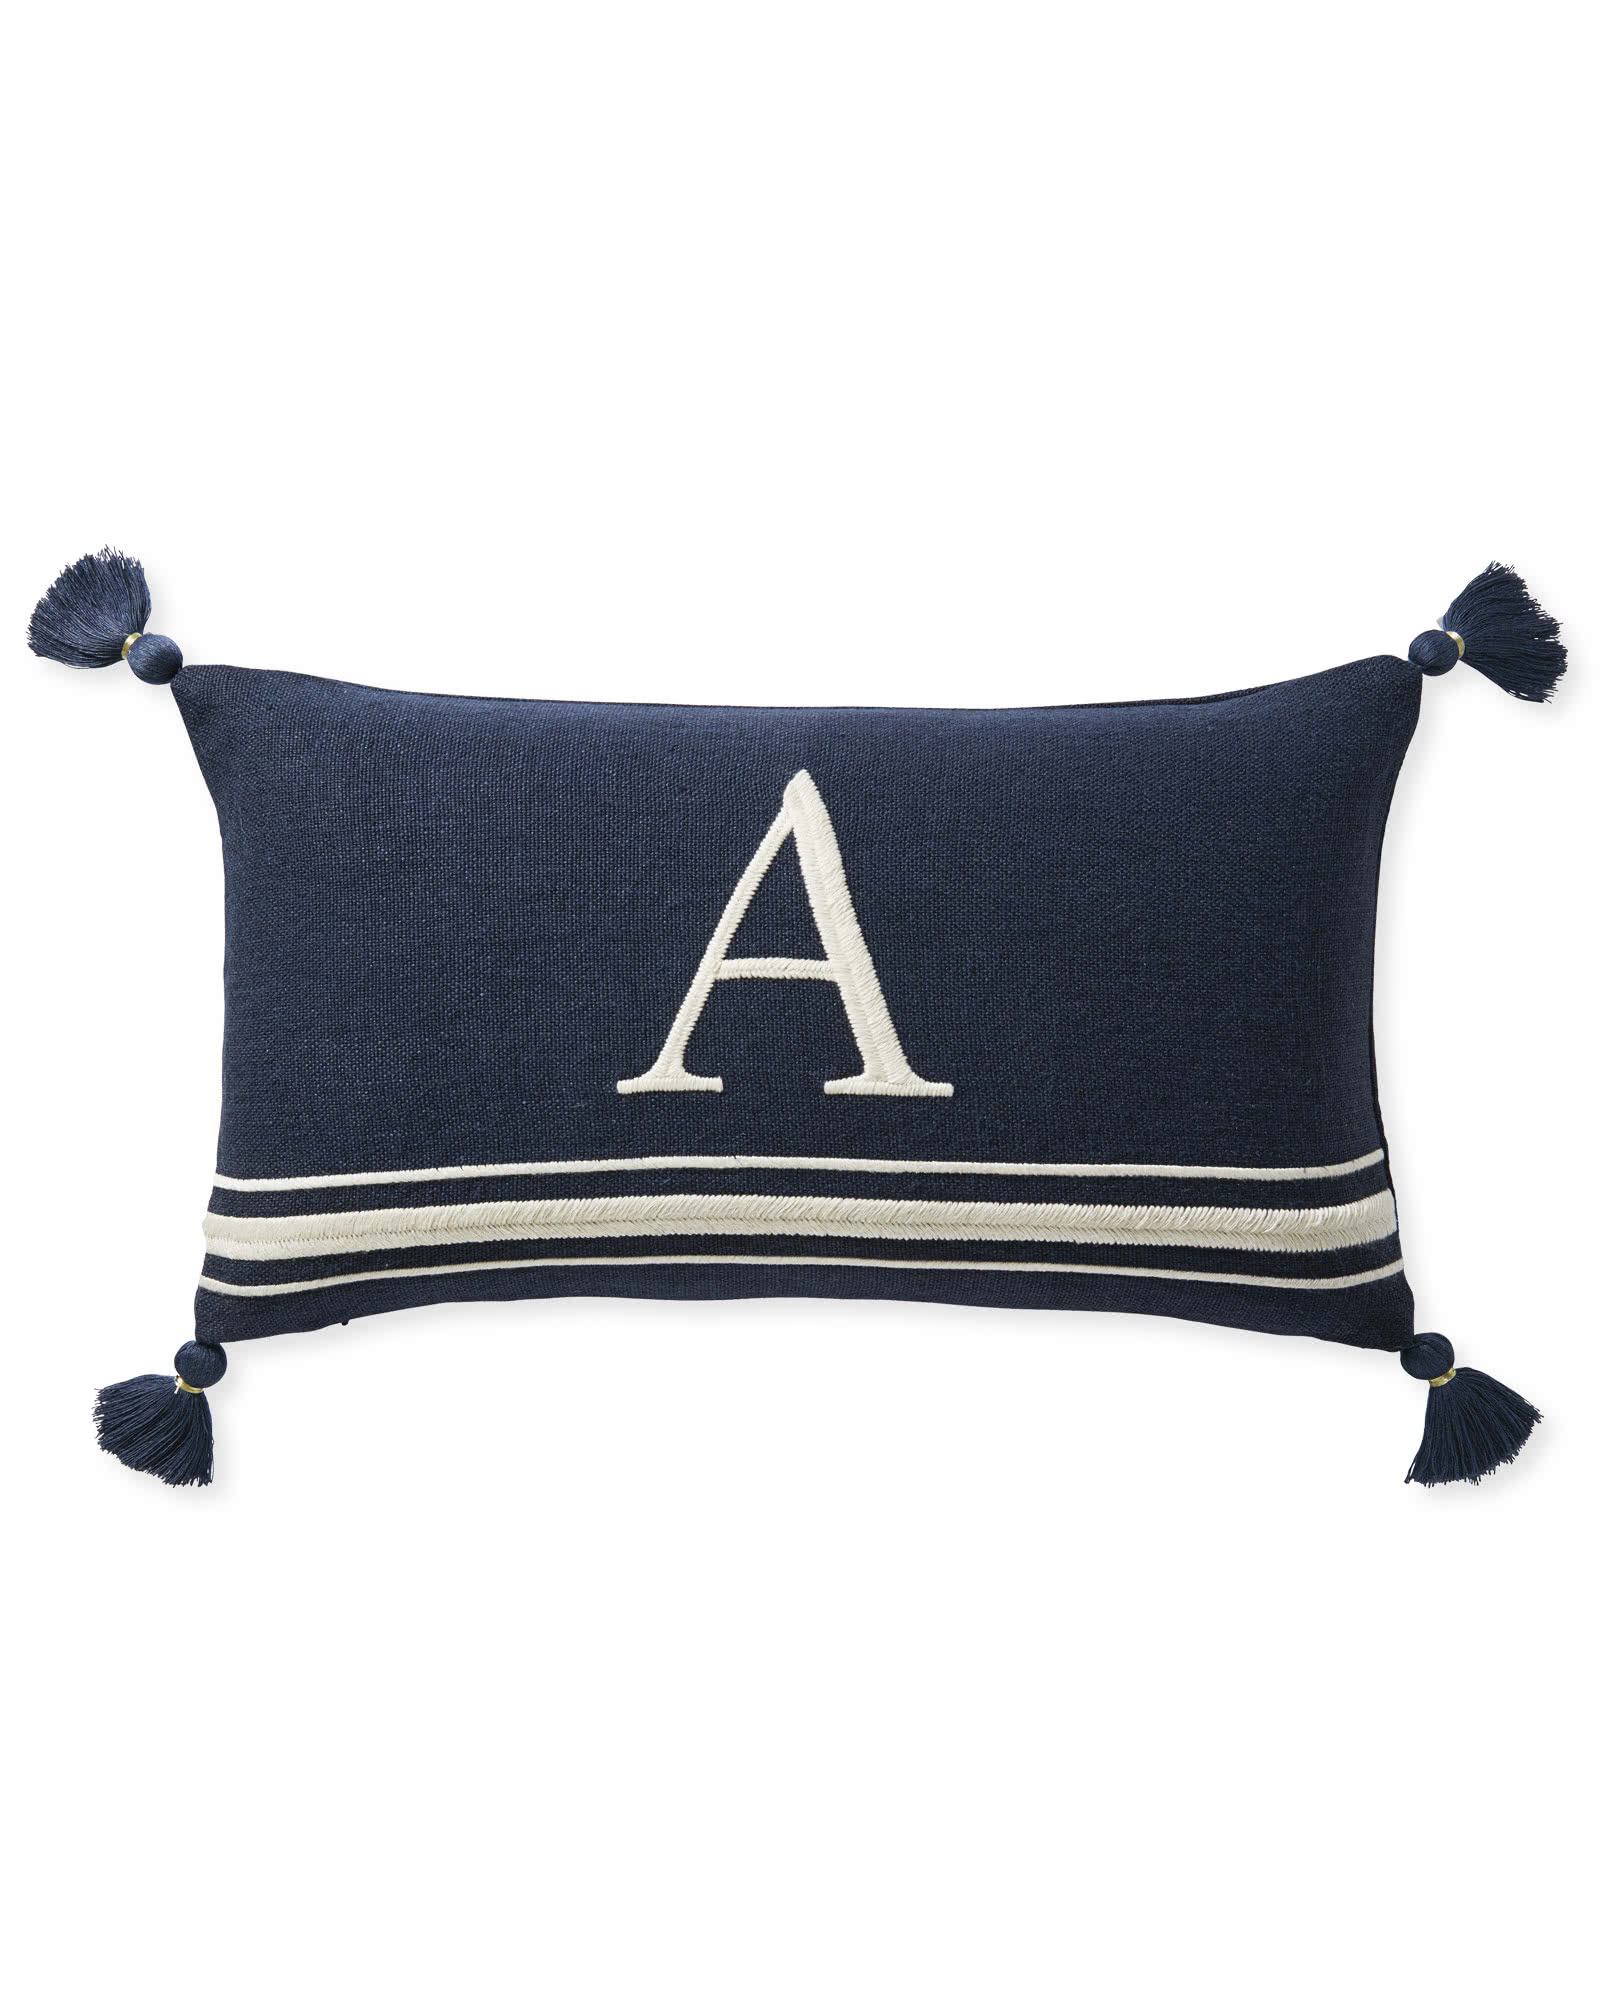 Embroidered Letter Pillow Cover